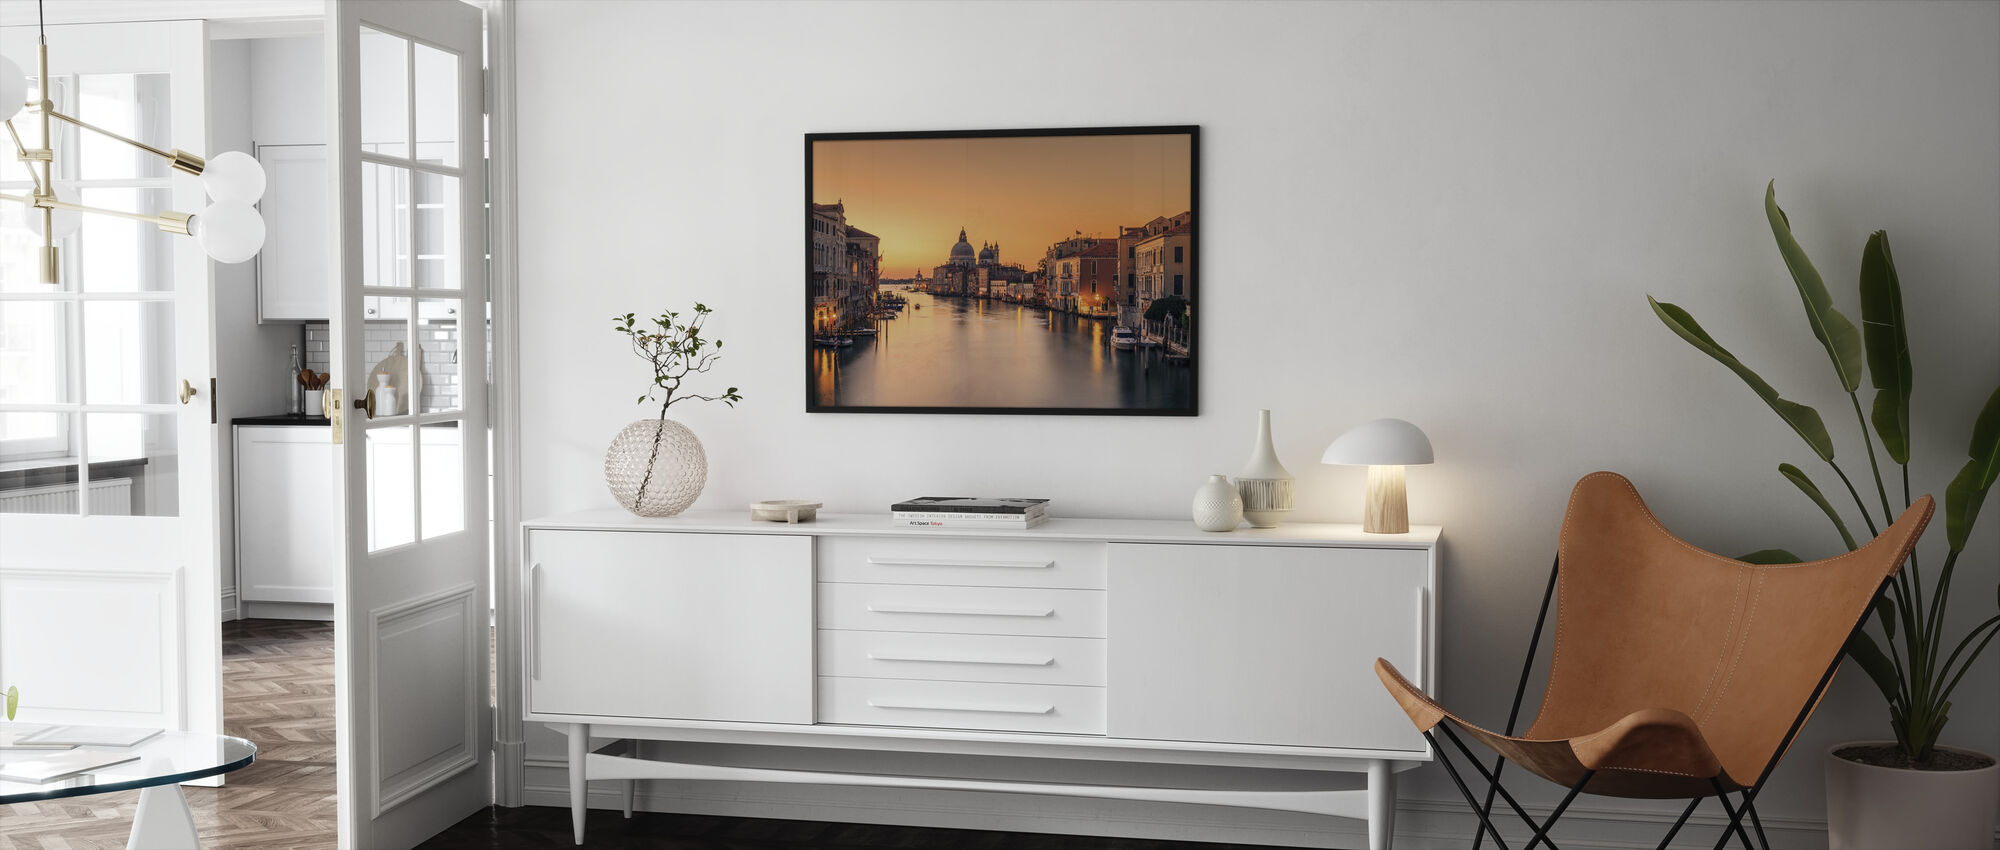 Dawn on Venice - Framed print - Living Room